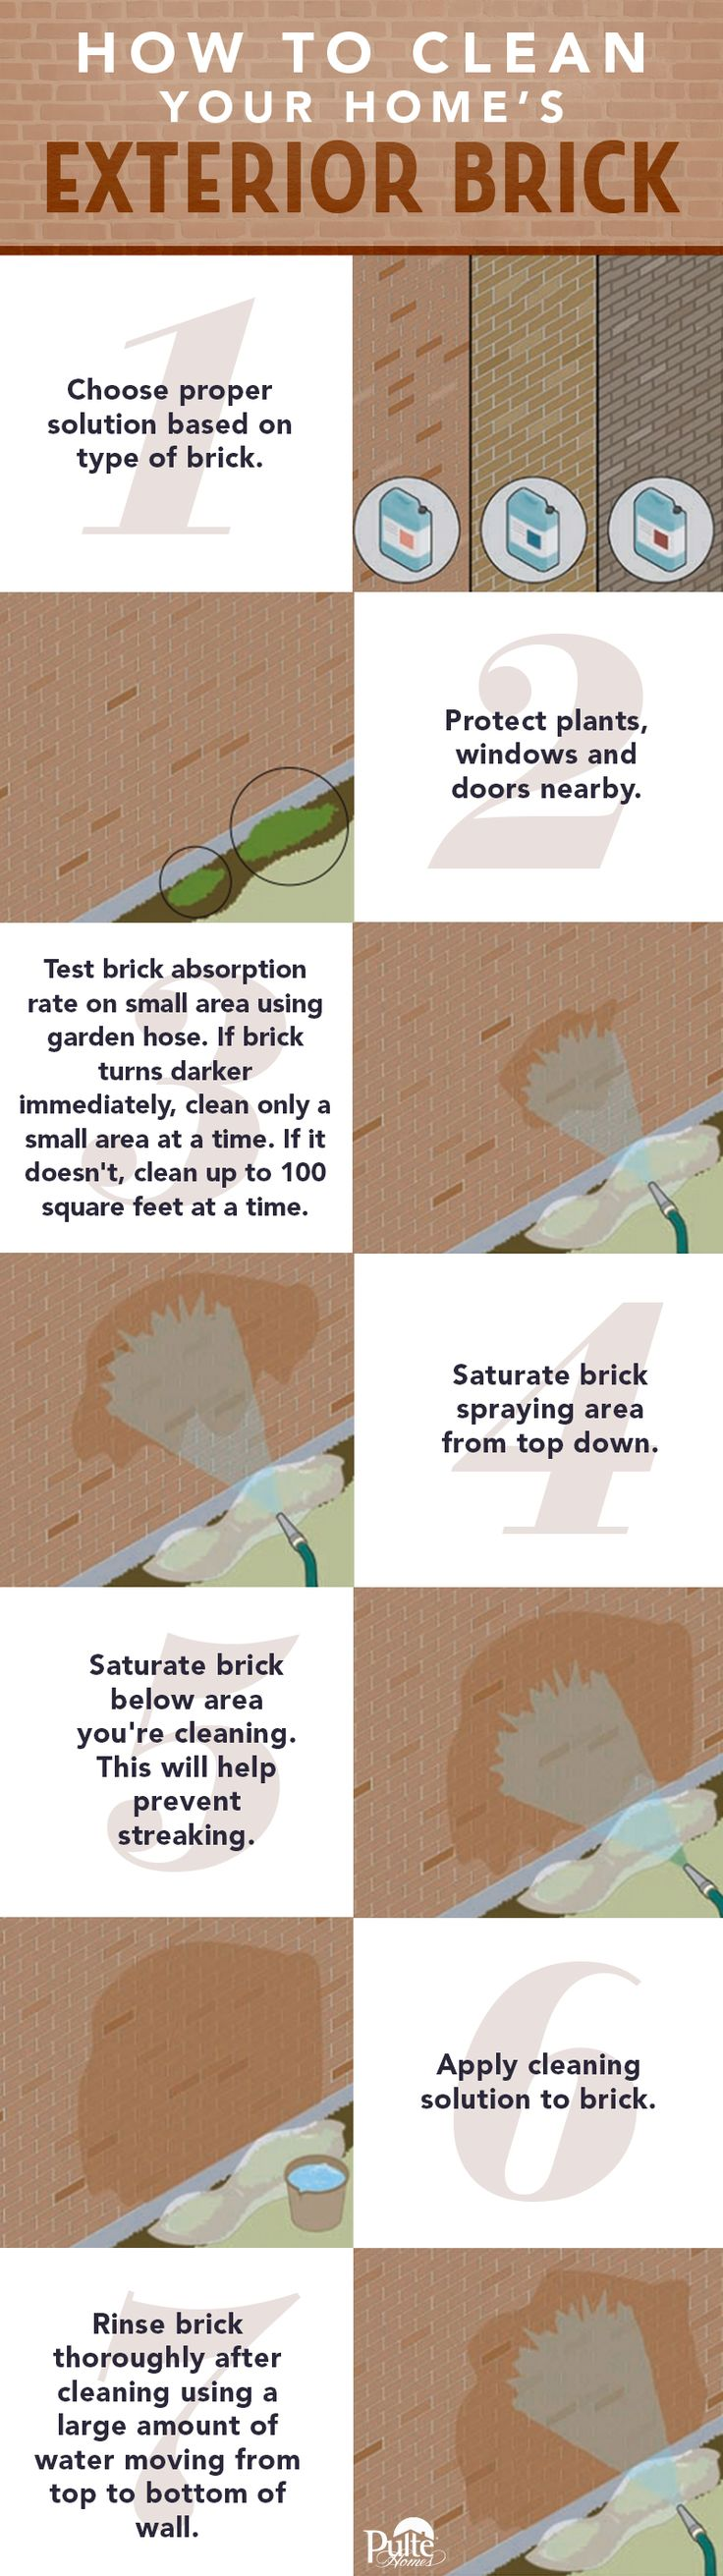 The exterior brick on your home is low maintenance with a high aesthetic value. To maintain your home's curb appeal, follow these simple steps for cleaning brick. | Pulte Homes